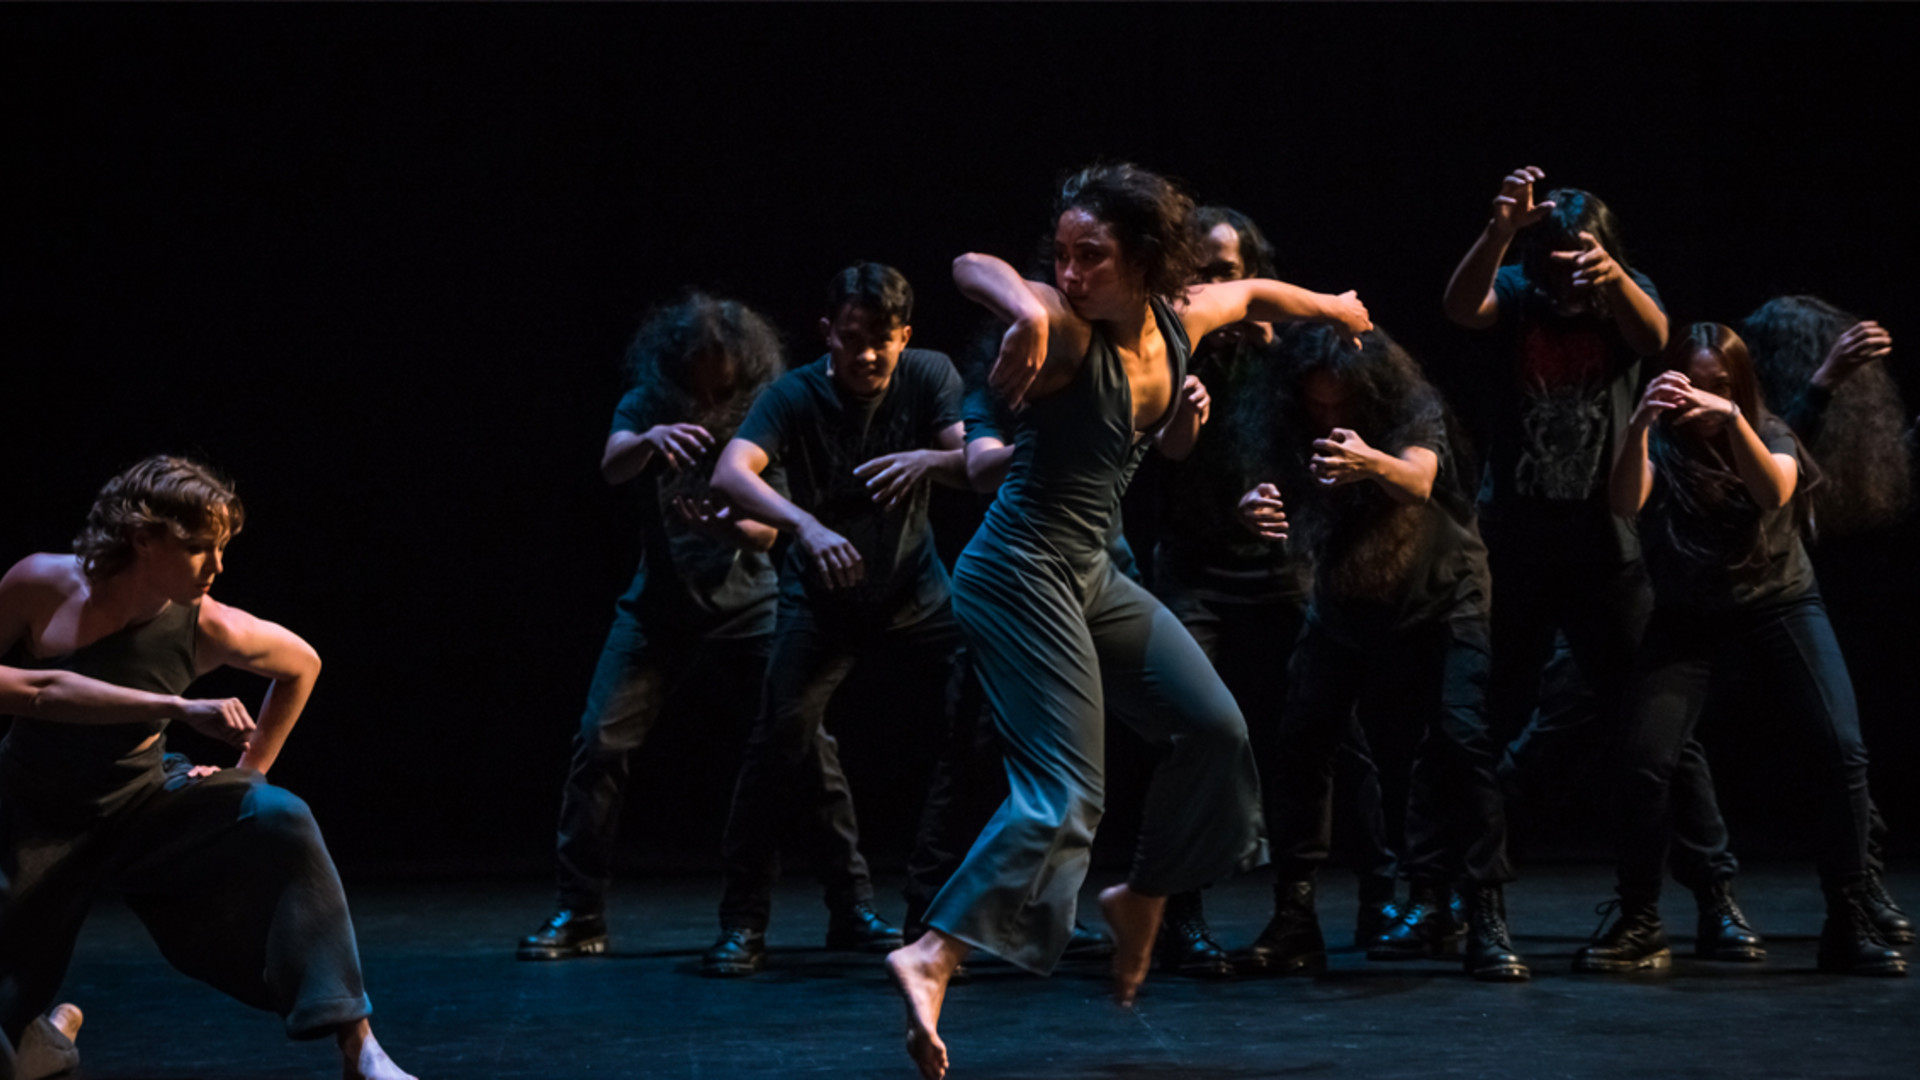 One dancer leaps, arms lifted while another crouches low to the side, as singers hover in the background.